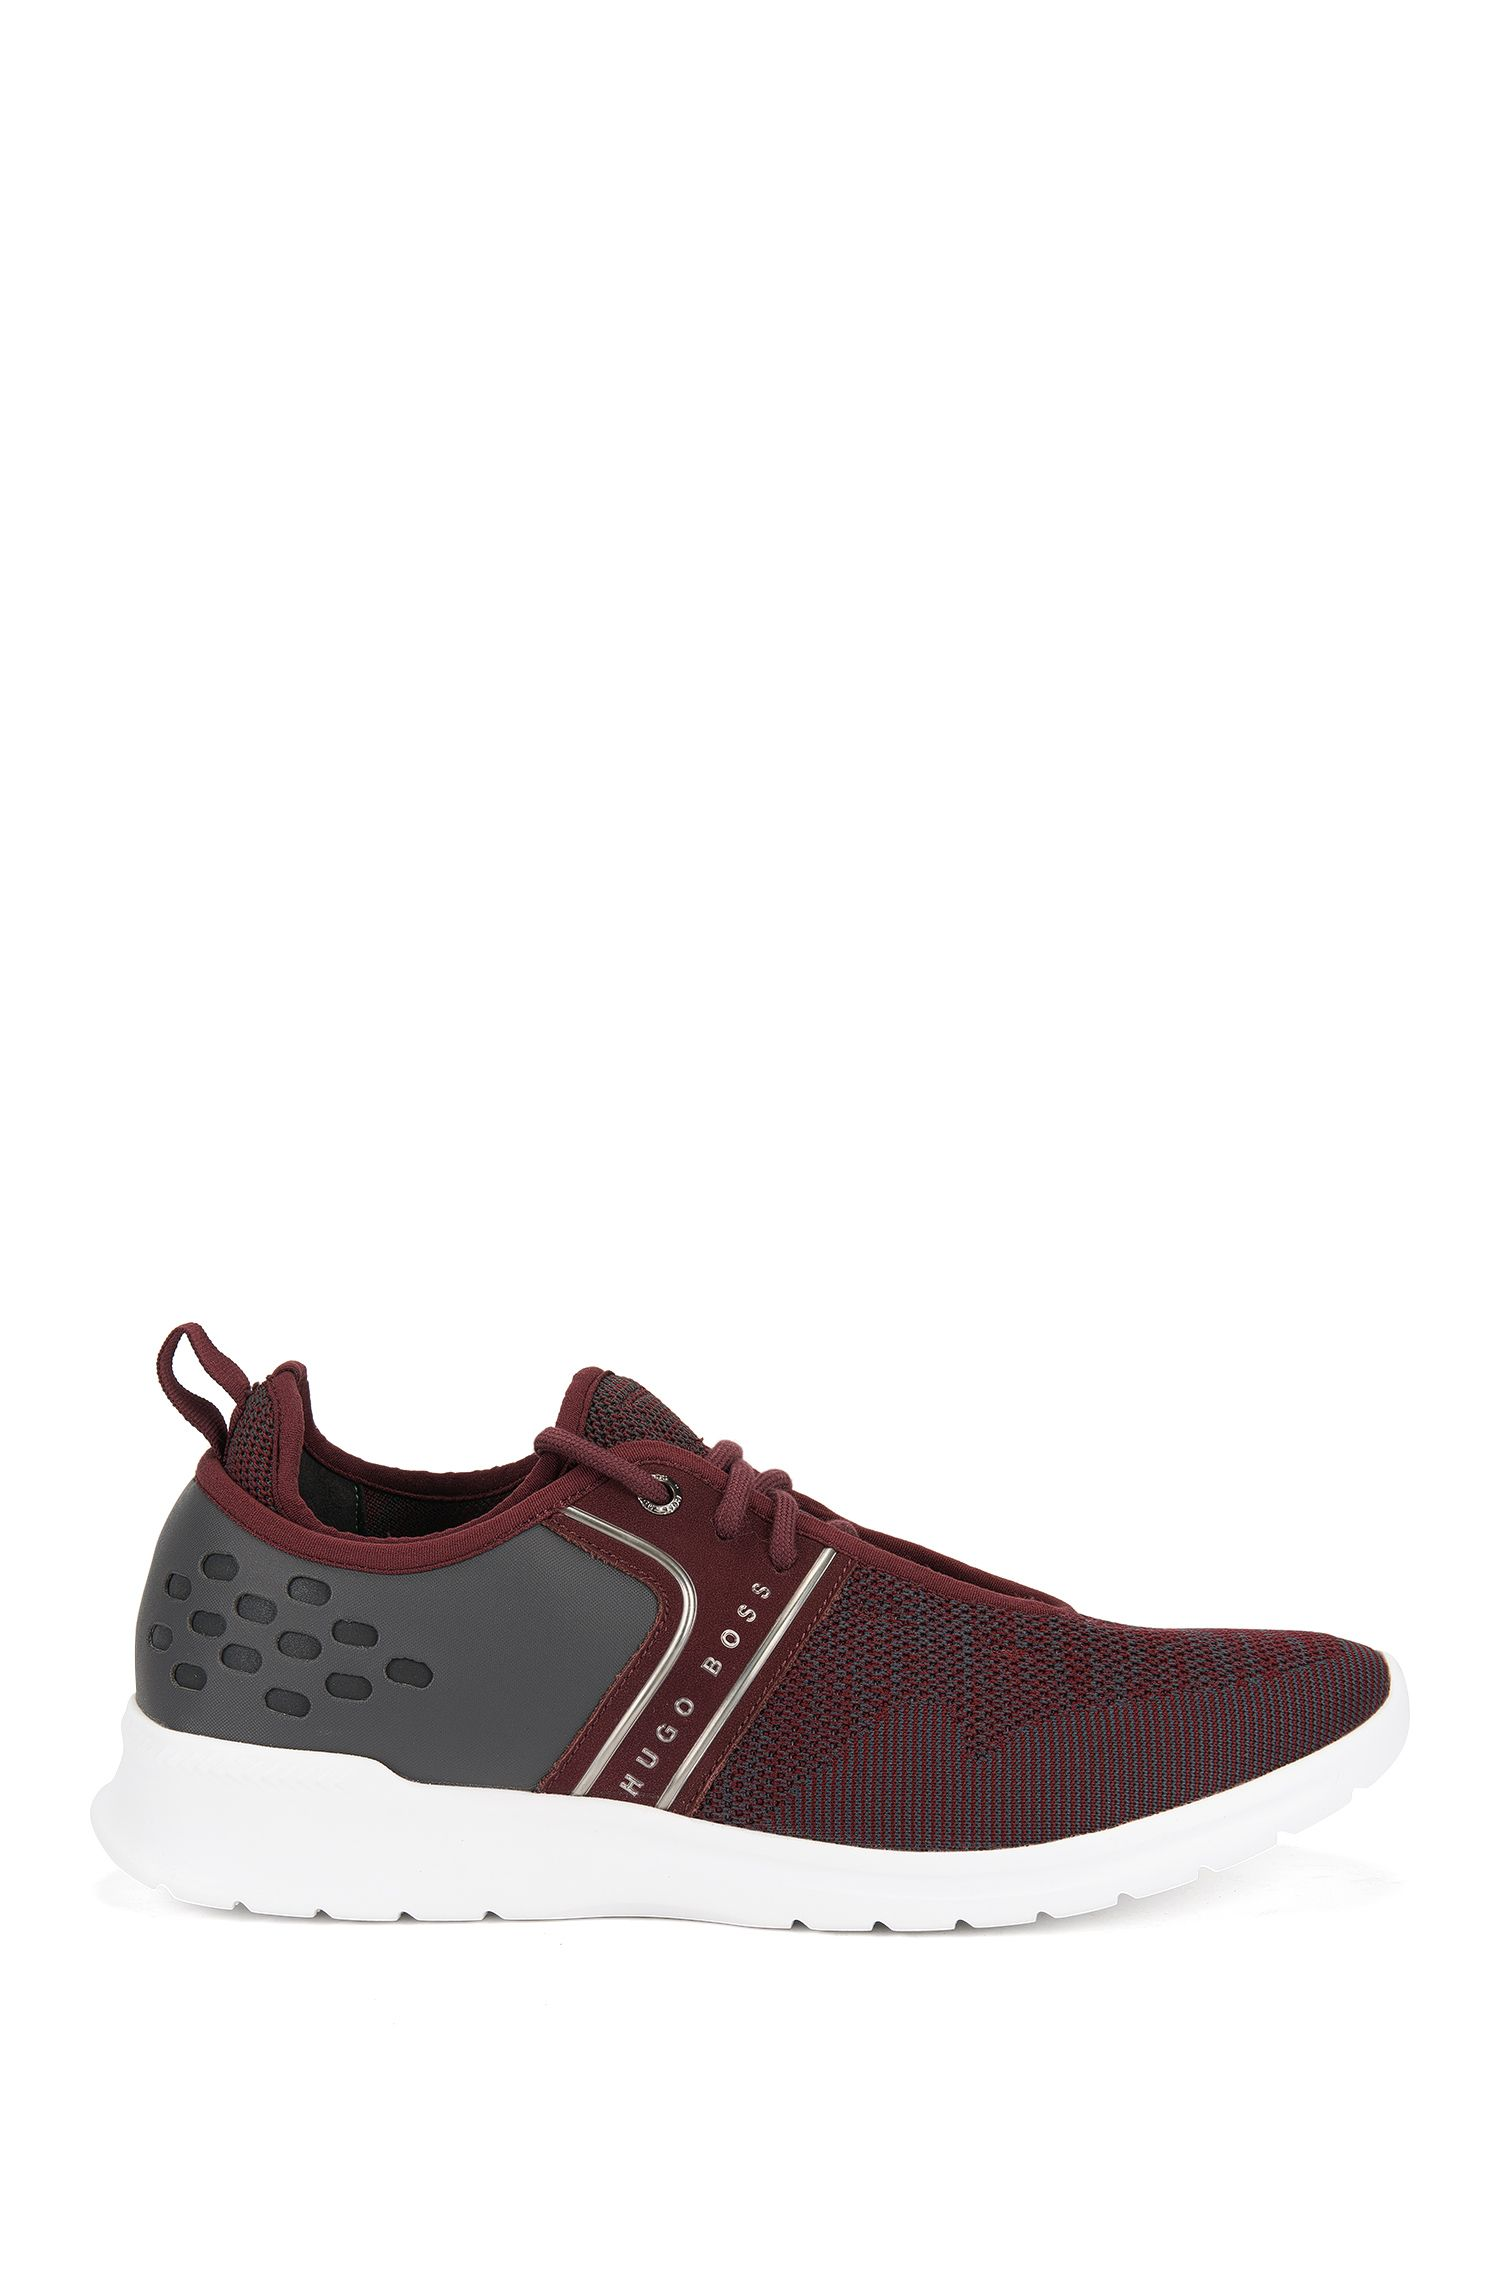 Nylon Sneakers | Extreme Runn Sykn, Dark Red